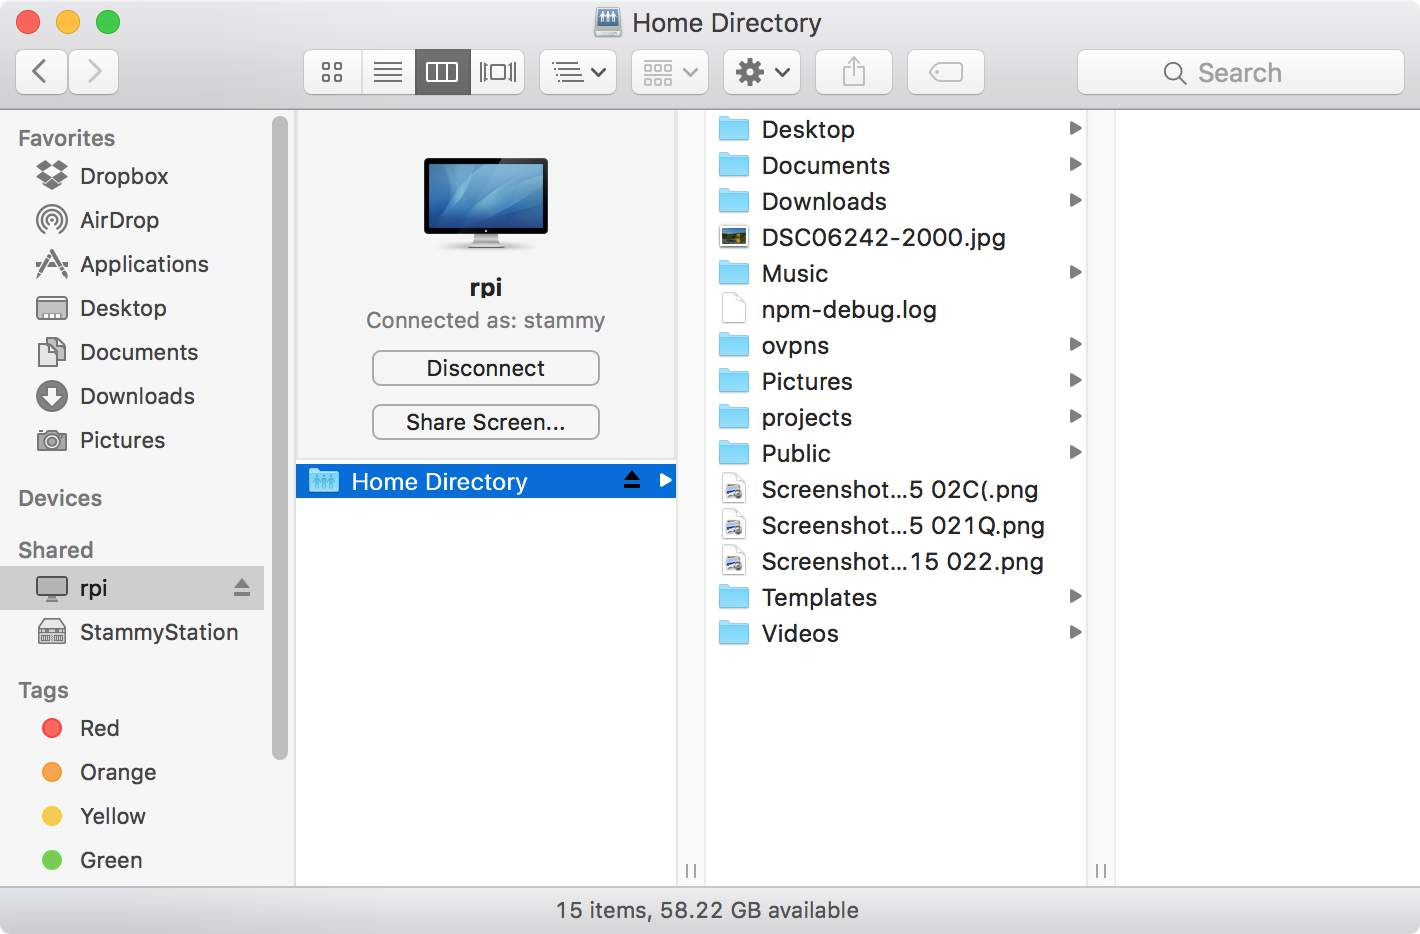 Getting Started With Raspberry Pi Wiringpi Banana Pro Visible In The Os X Finder